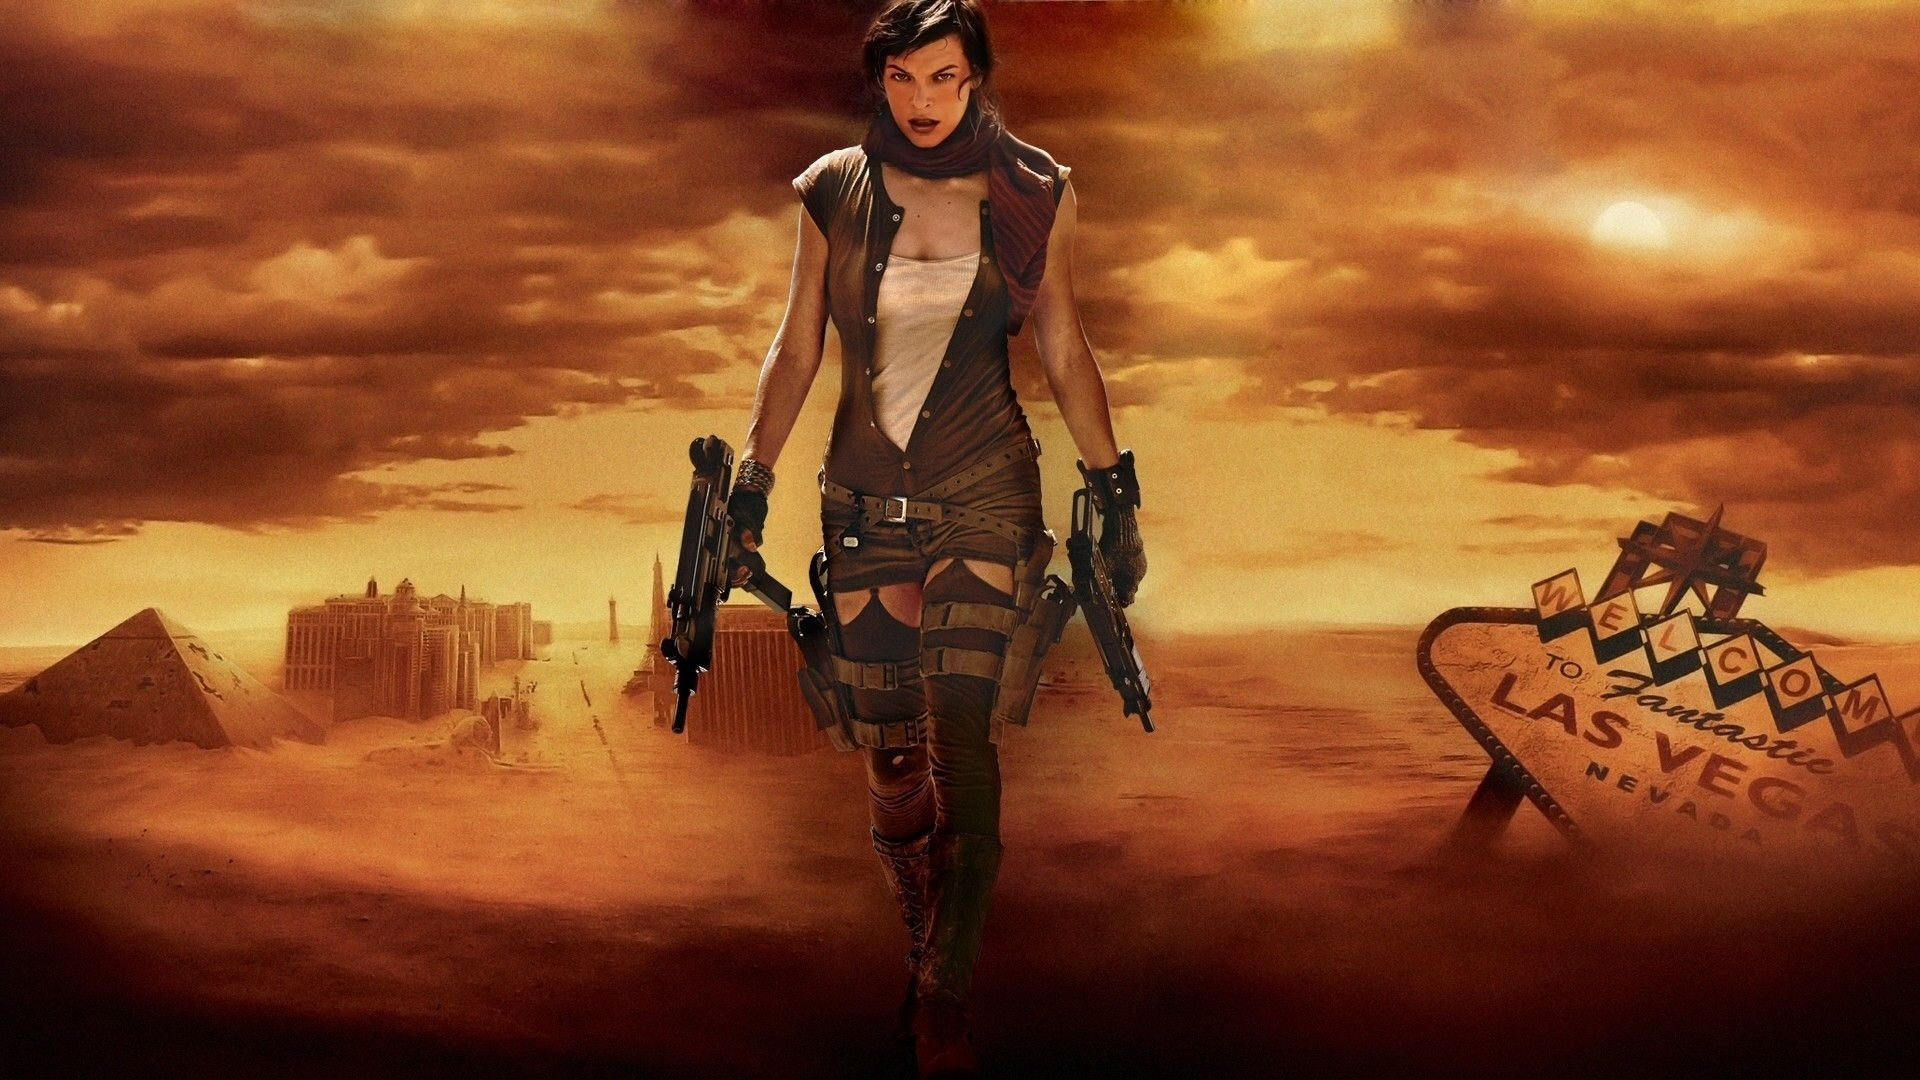 Milla Jovovich Resident Evil Wallpapers - Wallpaper Cave